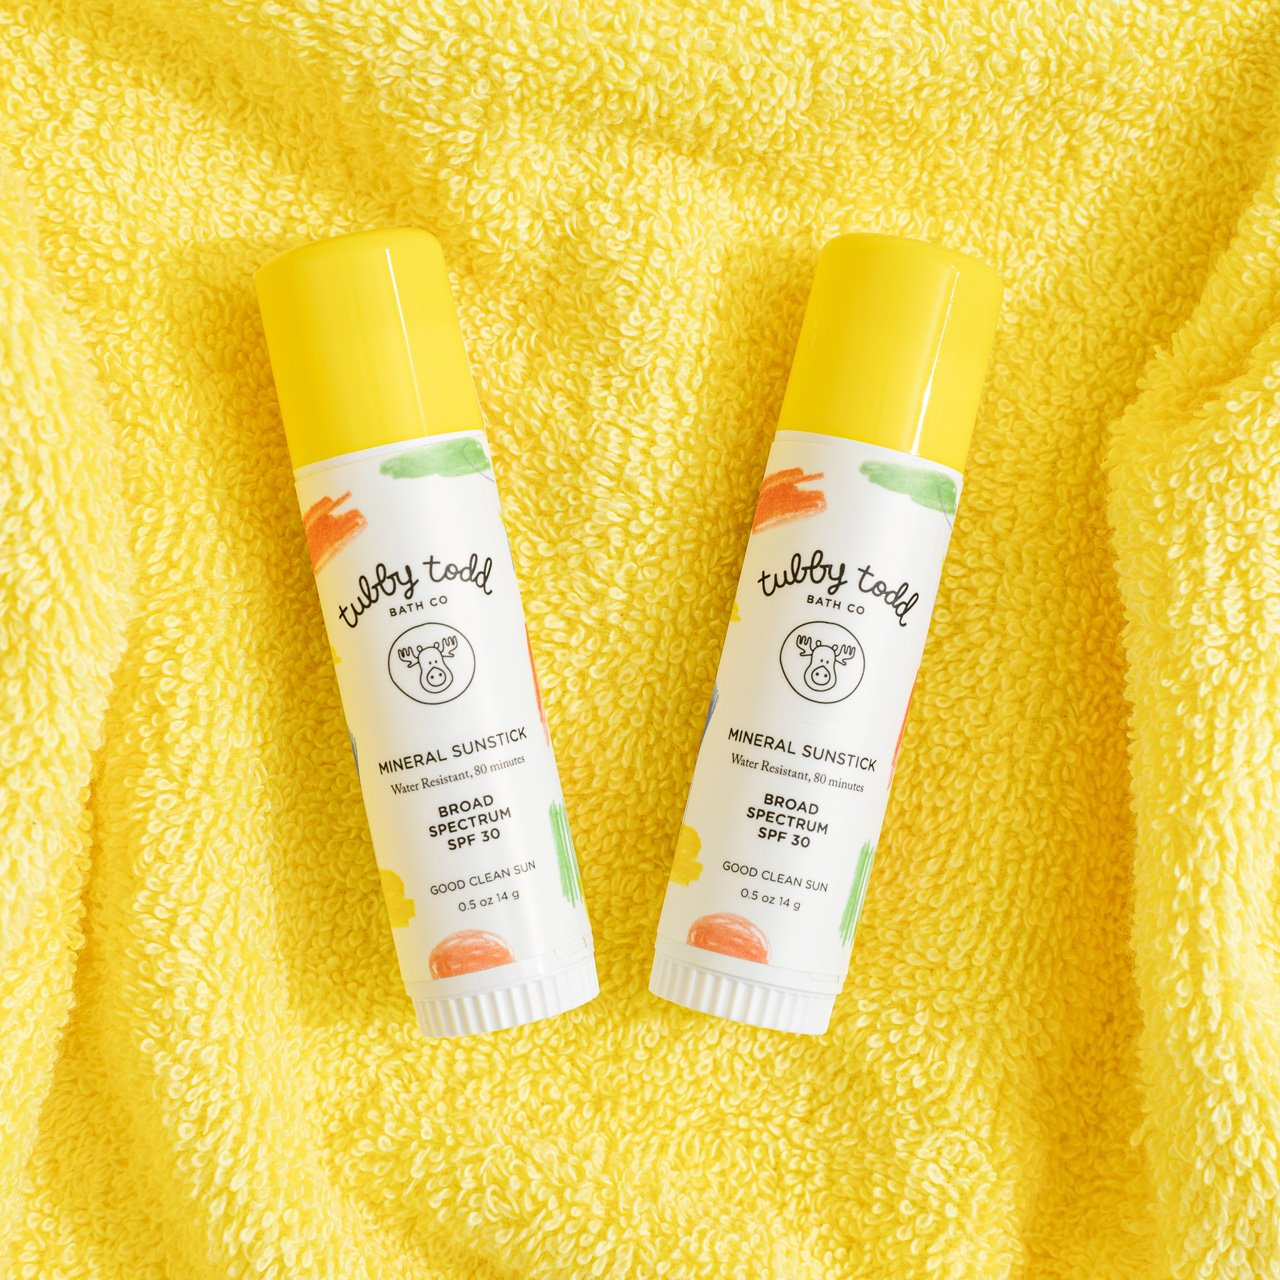 maisonette-sunstick-duo-two-yellow-towel